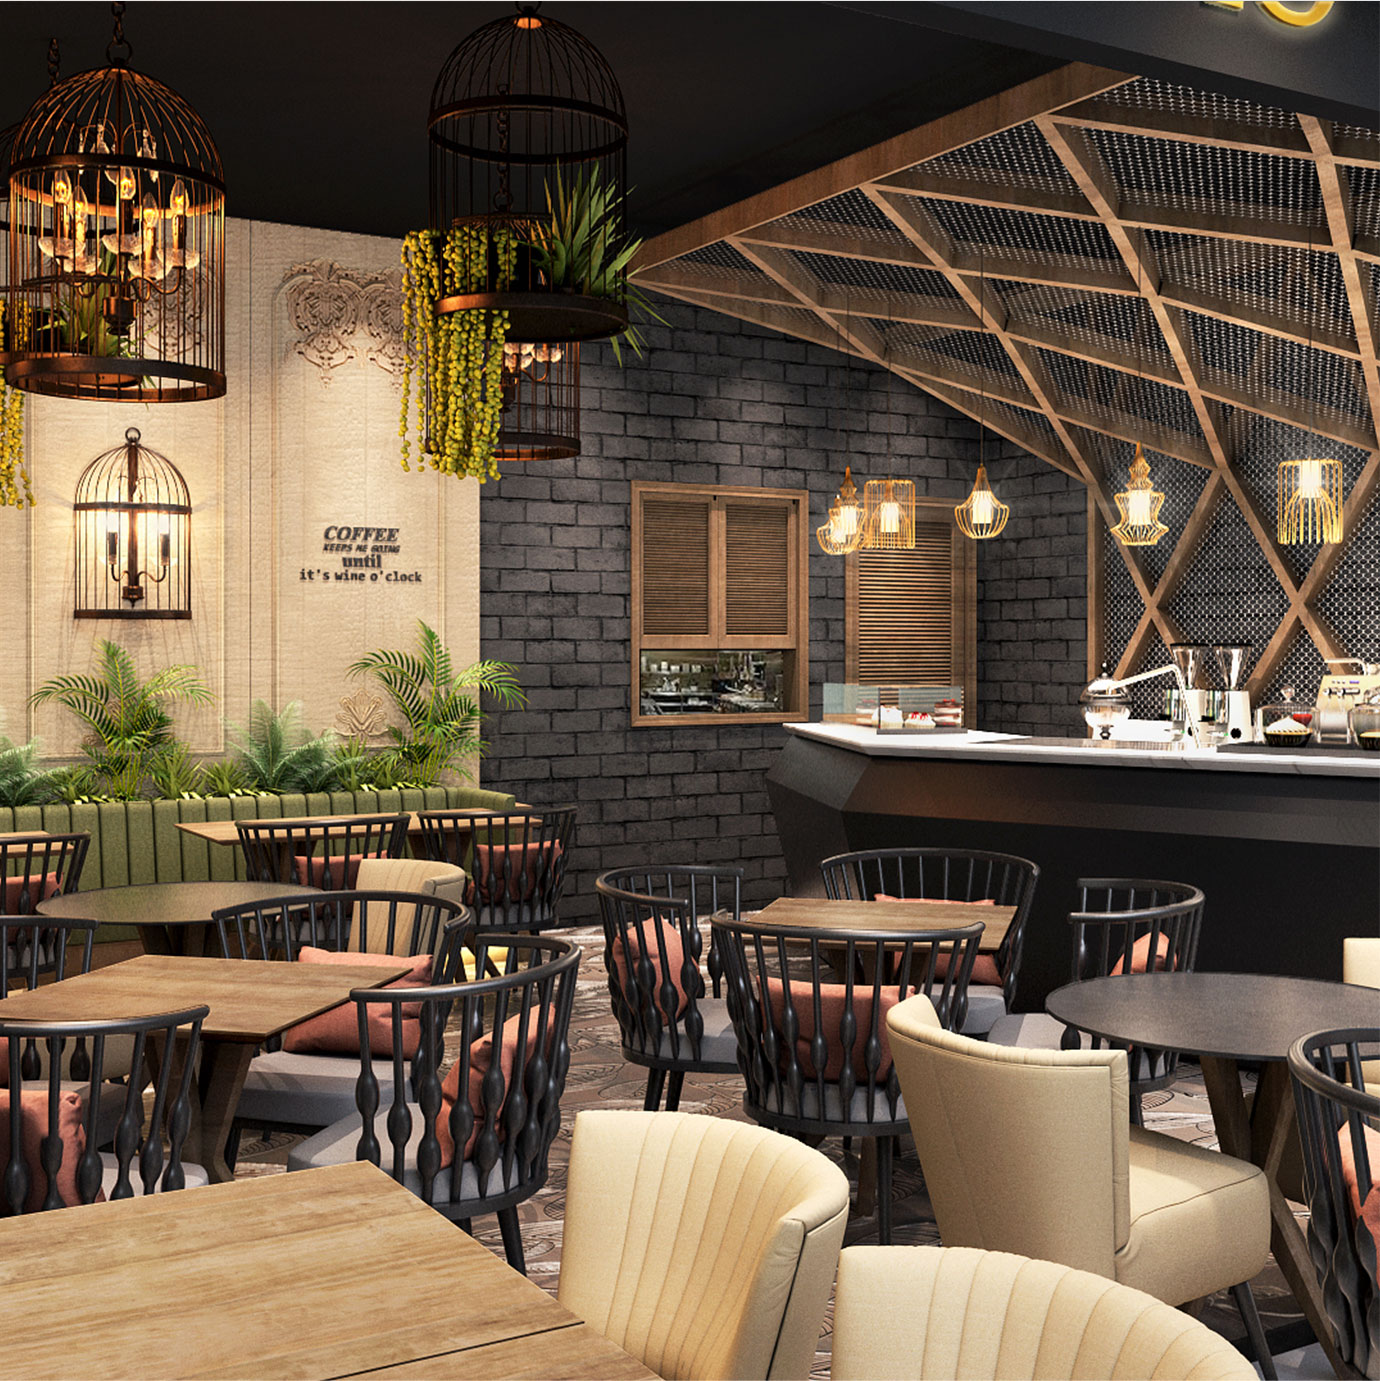 Life with cacao luxury cafe design and general contract Saudi Arabia Turkey Kuwait